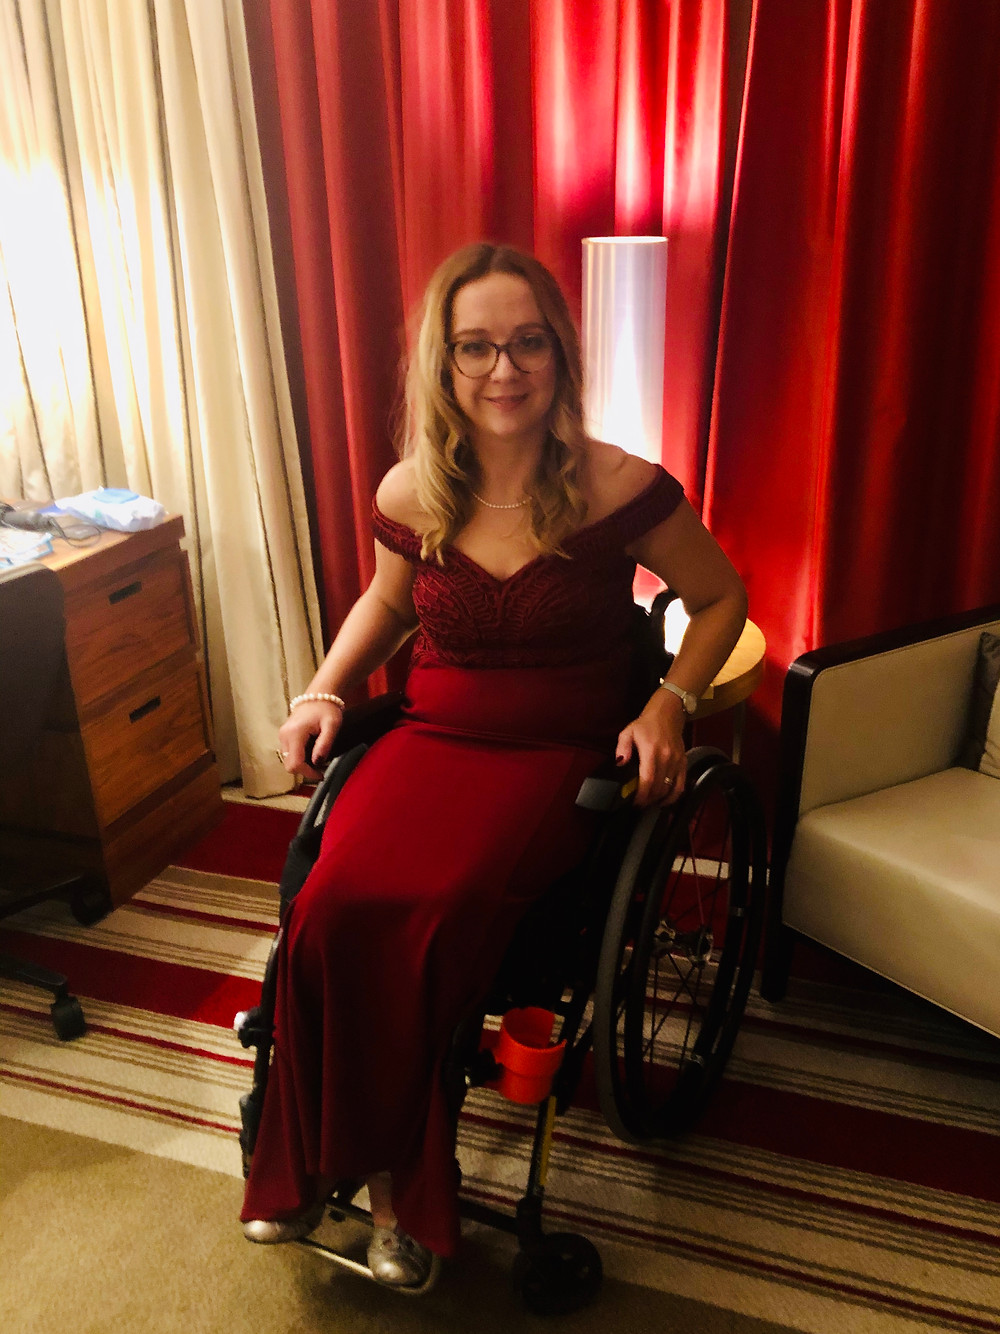 Carrie-Ann sitting in her wheelchair wearing a long red dress